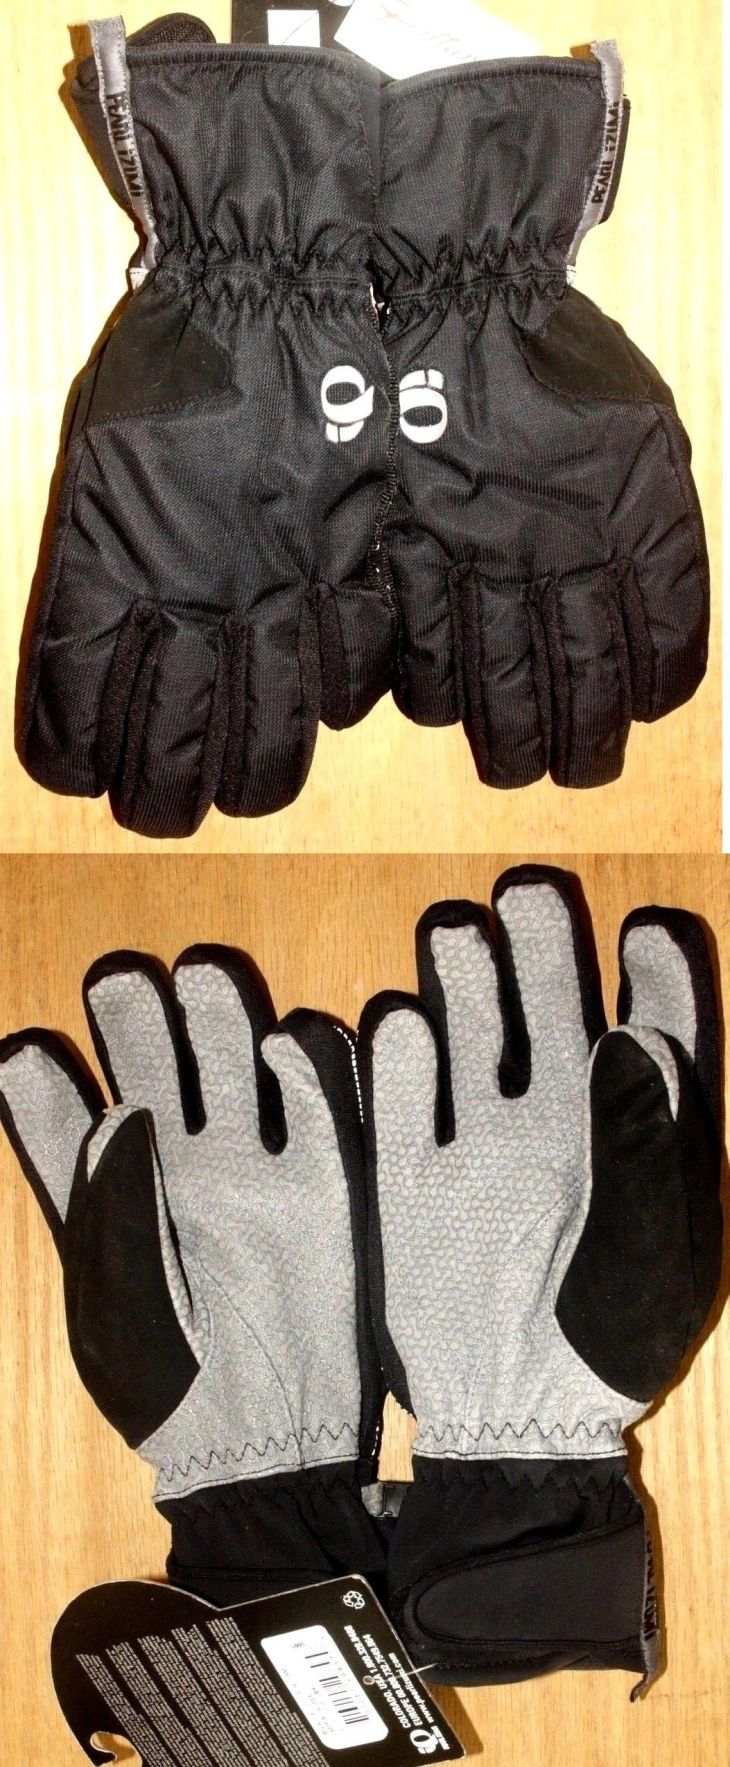 Gloves Pearl Izumi Amfib Glove Small Black ue BUY IT NOW ONLY